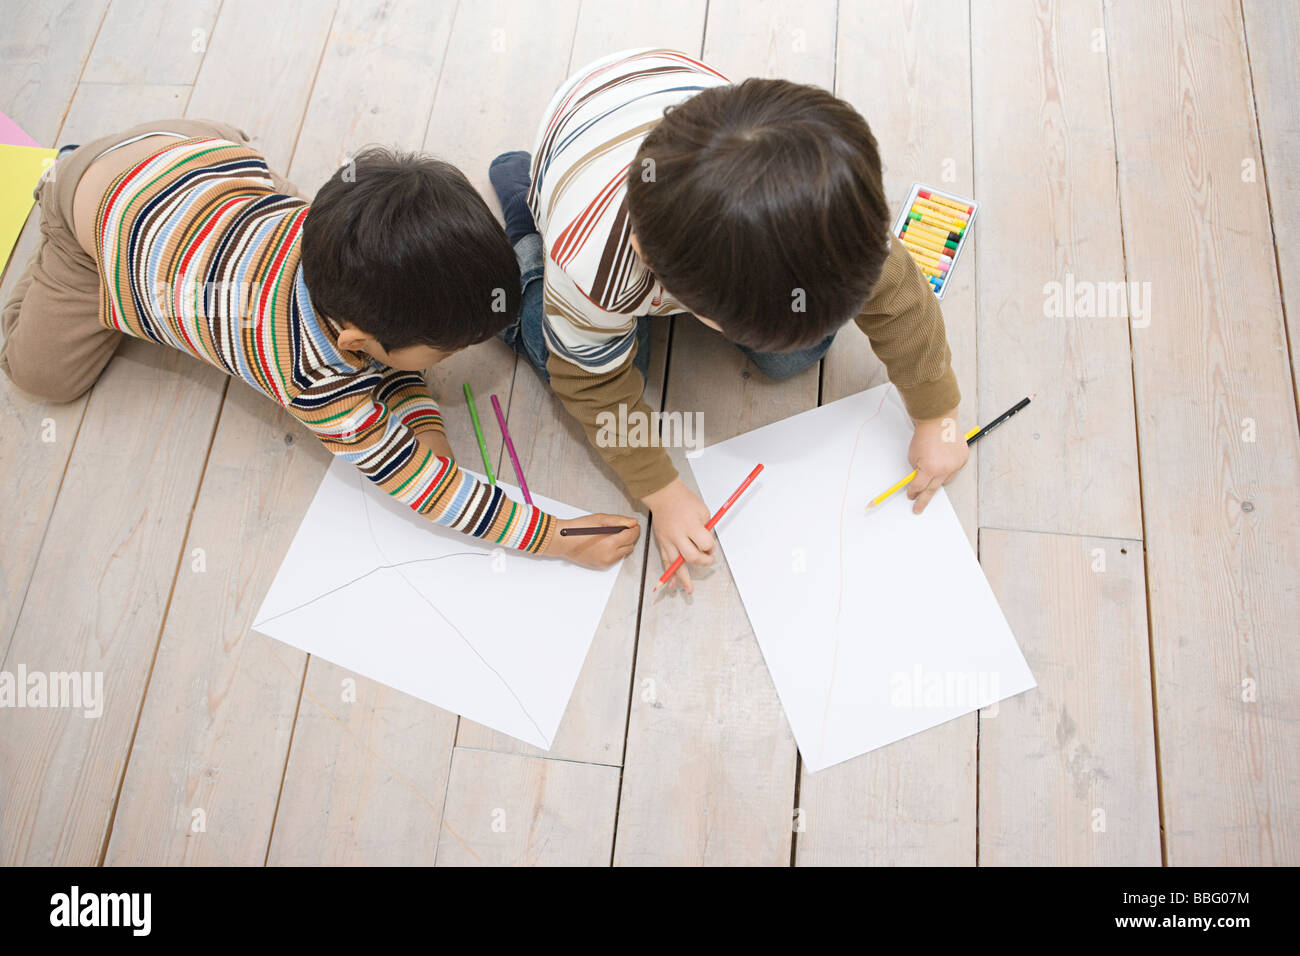 Boys drawing with colouring pencils - Stock Image